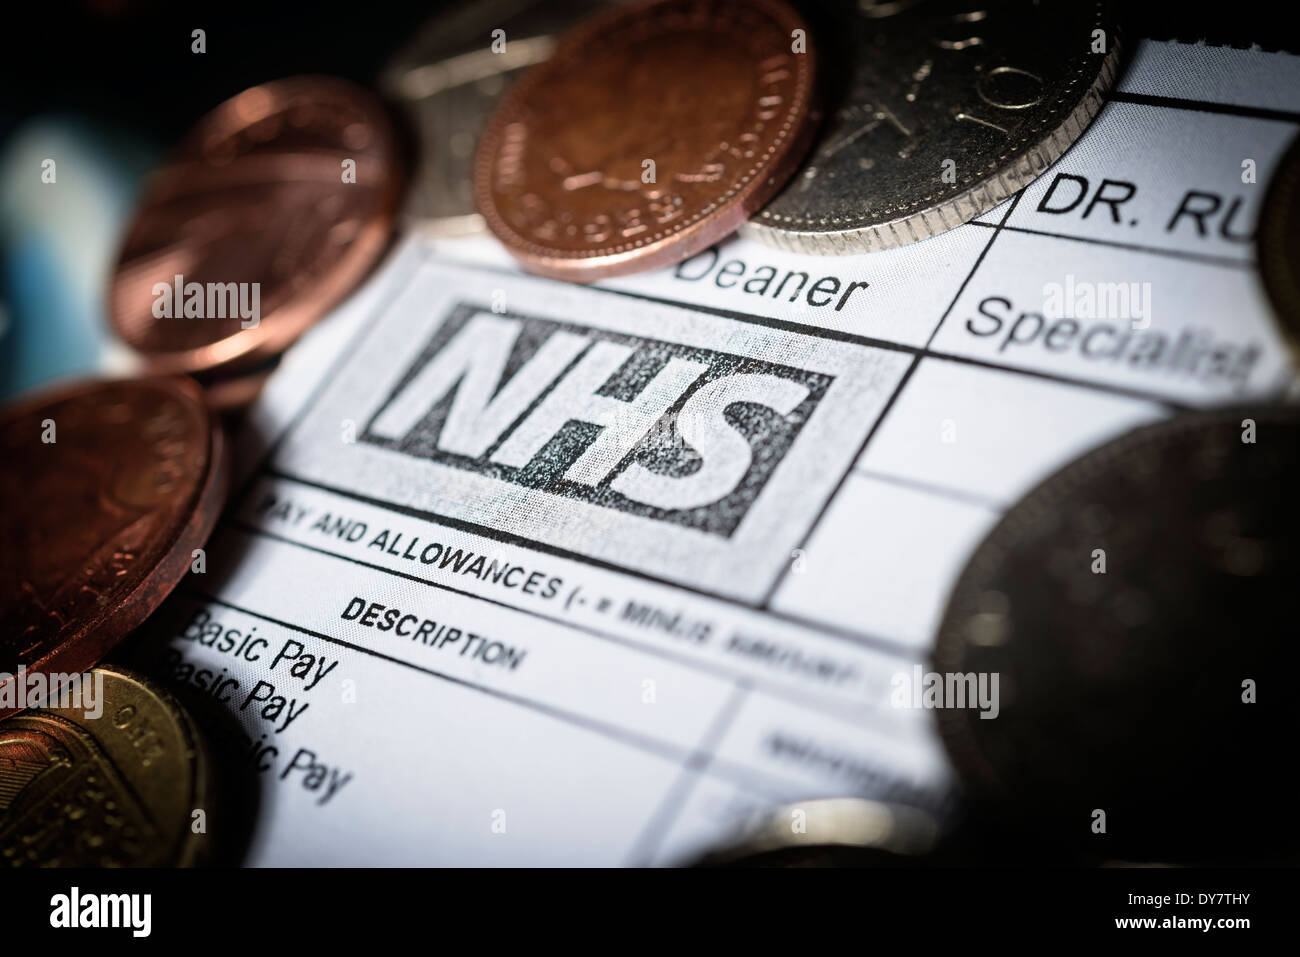 NHS Salaries and Wages concept - A Doctor's NHS Payslip with British coins - National Health Service budget cuts - Stock Image